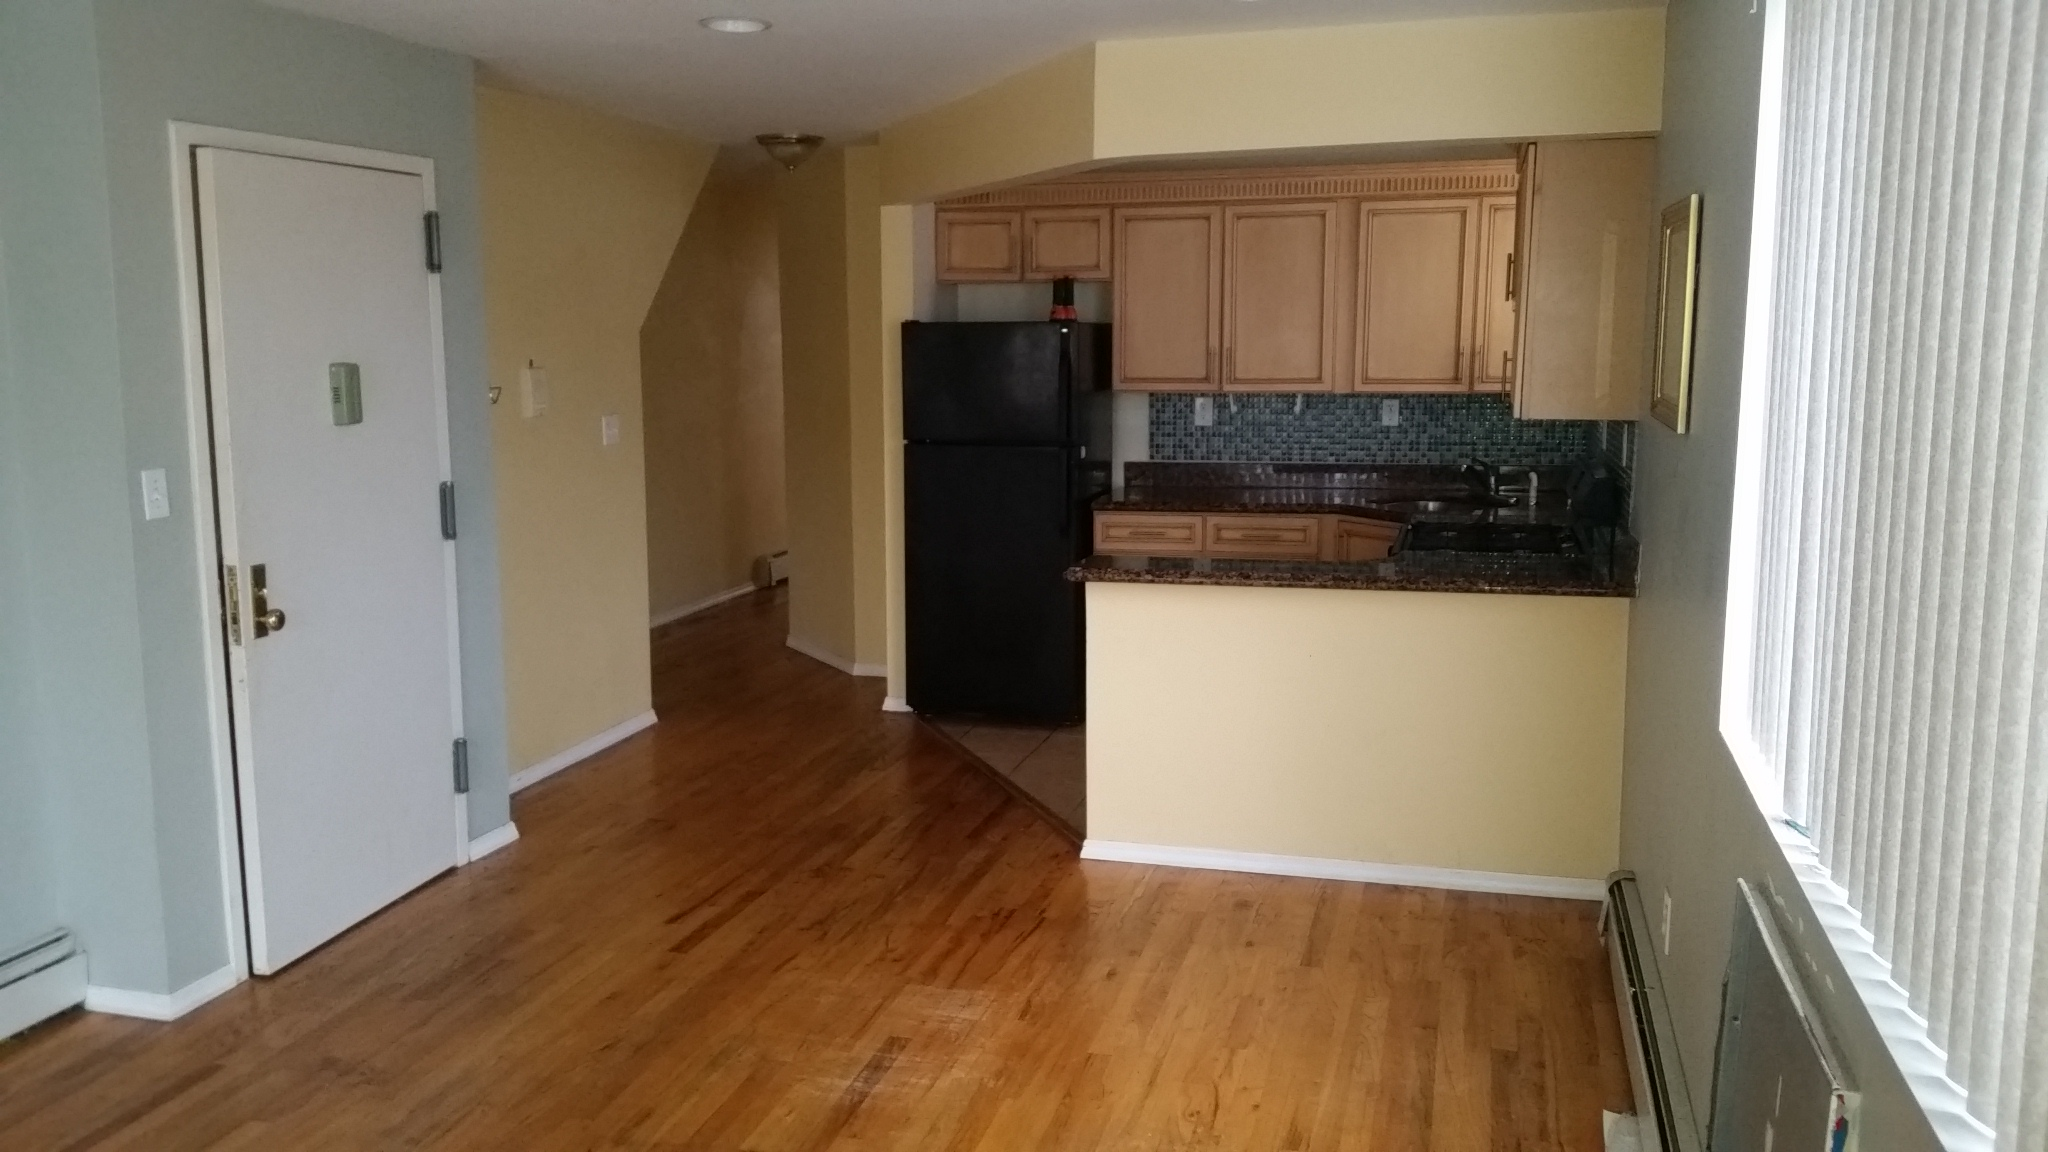 Lovely 2BR Apartment In Canarsie Brooklyn